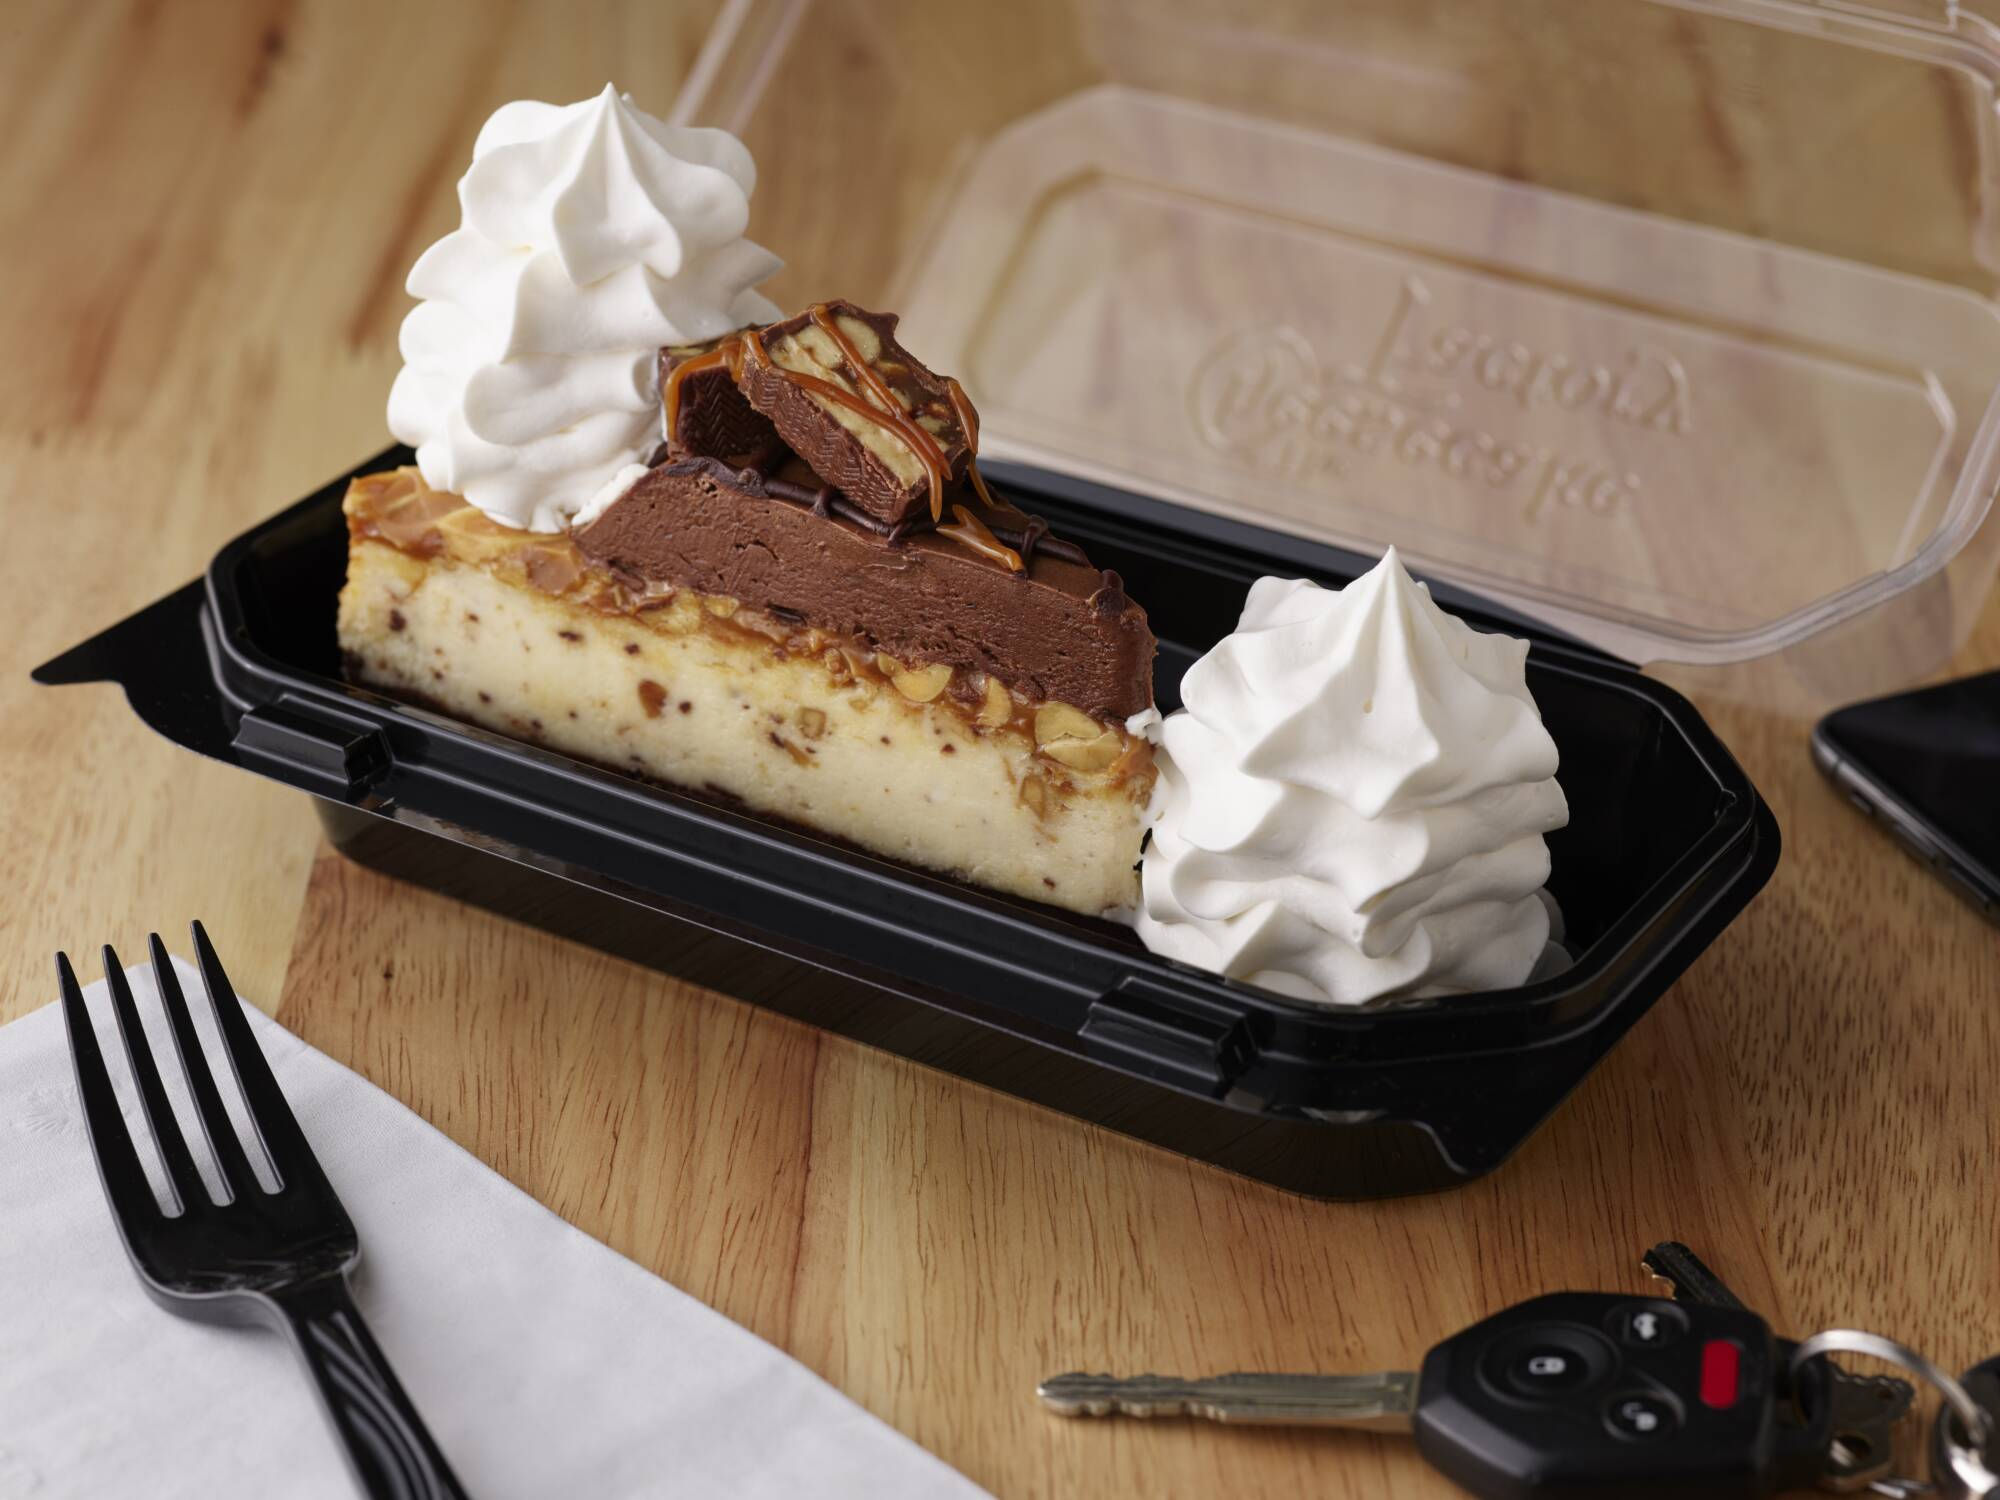 Enjoy Chocolate Carmelicious Cheesecake made with Snickers at Cheesecake Factory and support Freestore Foodbank!